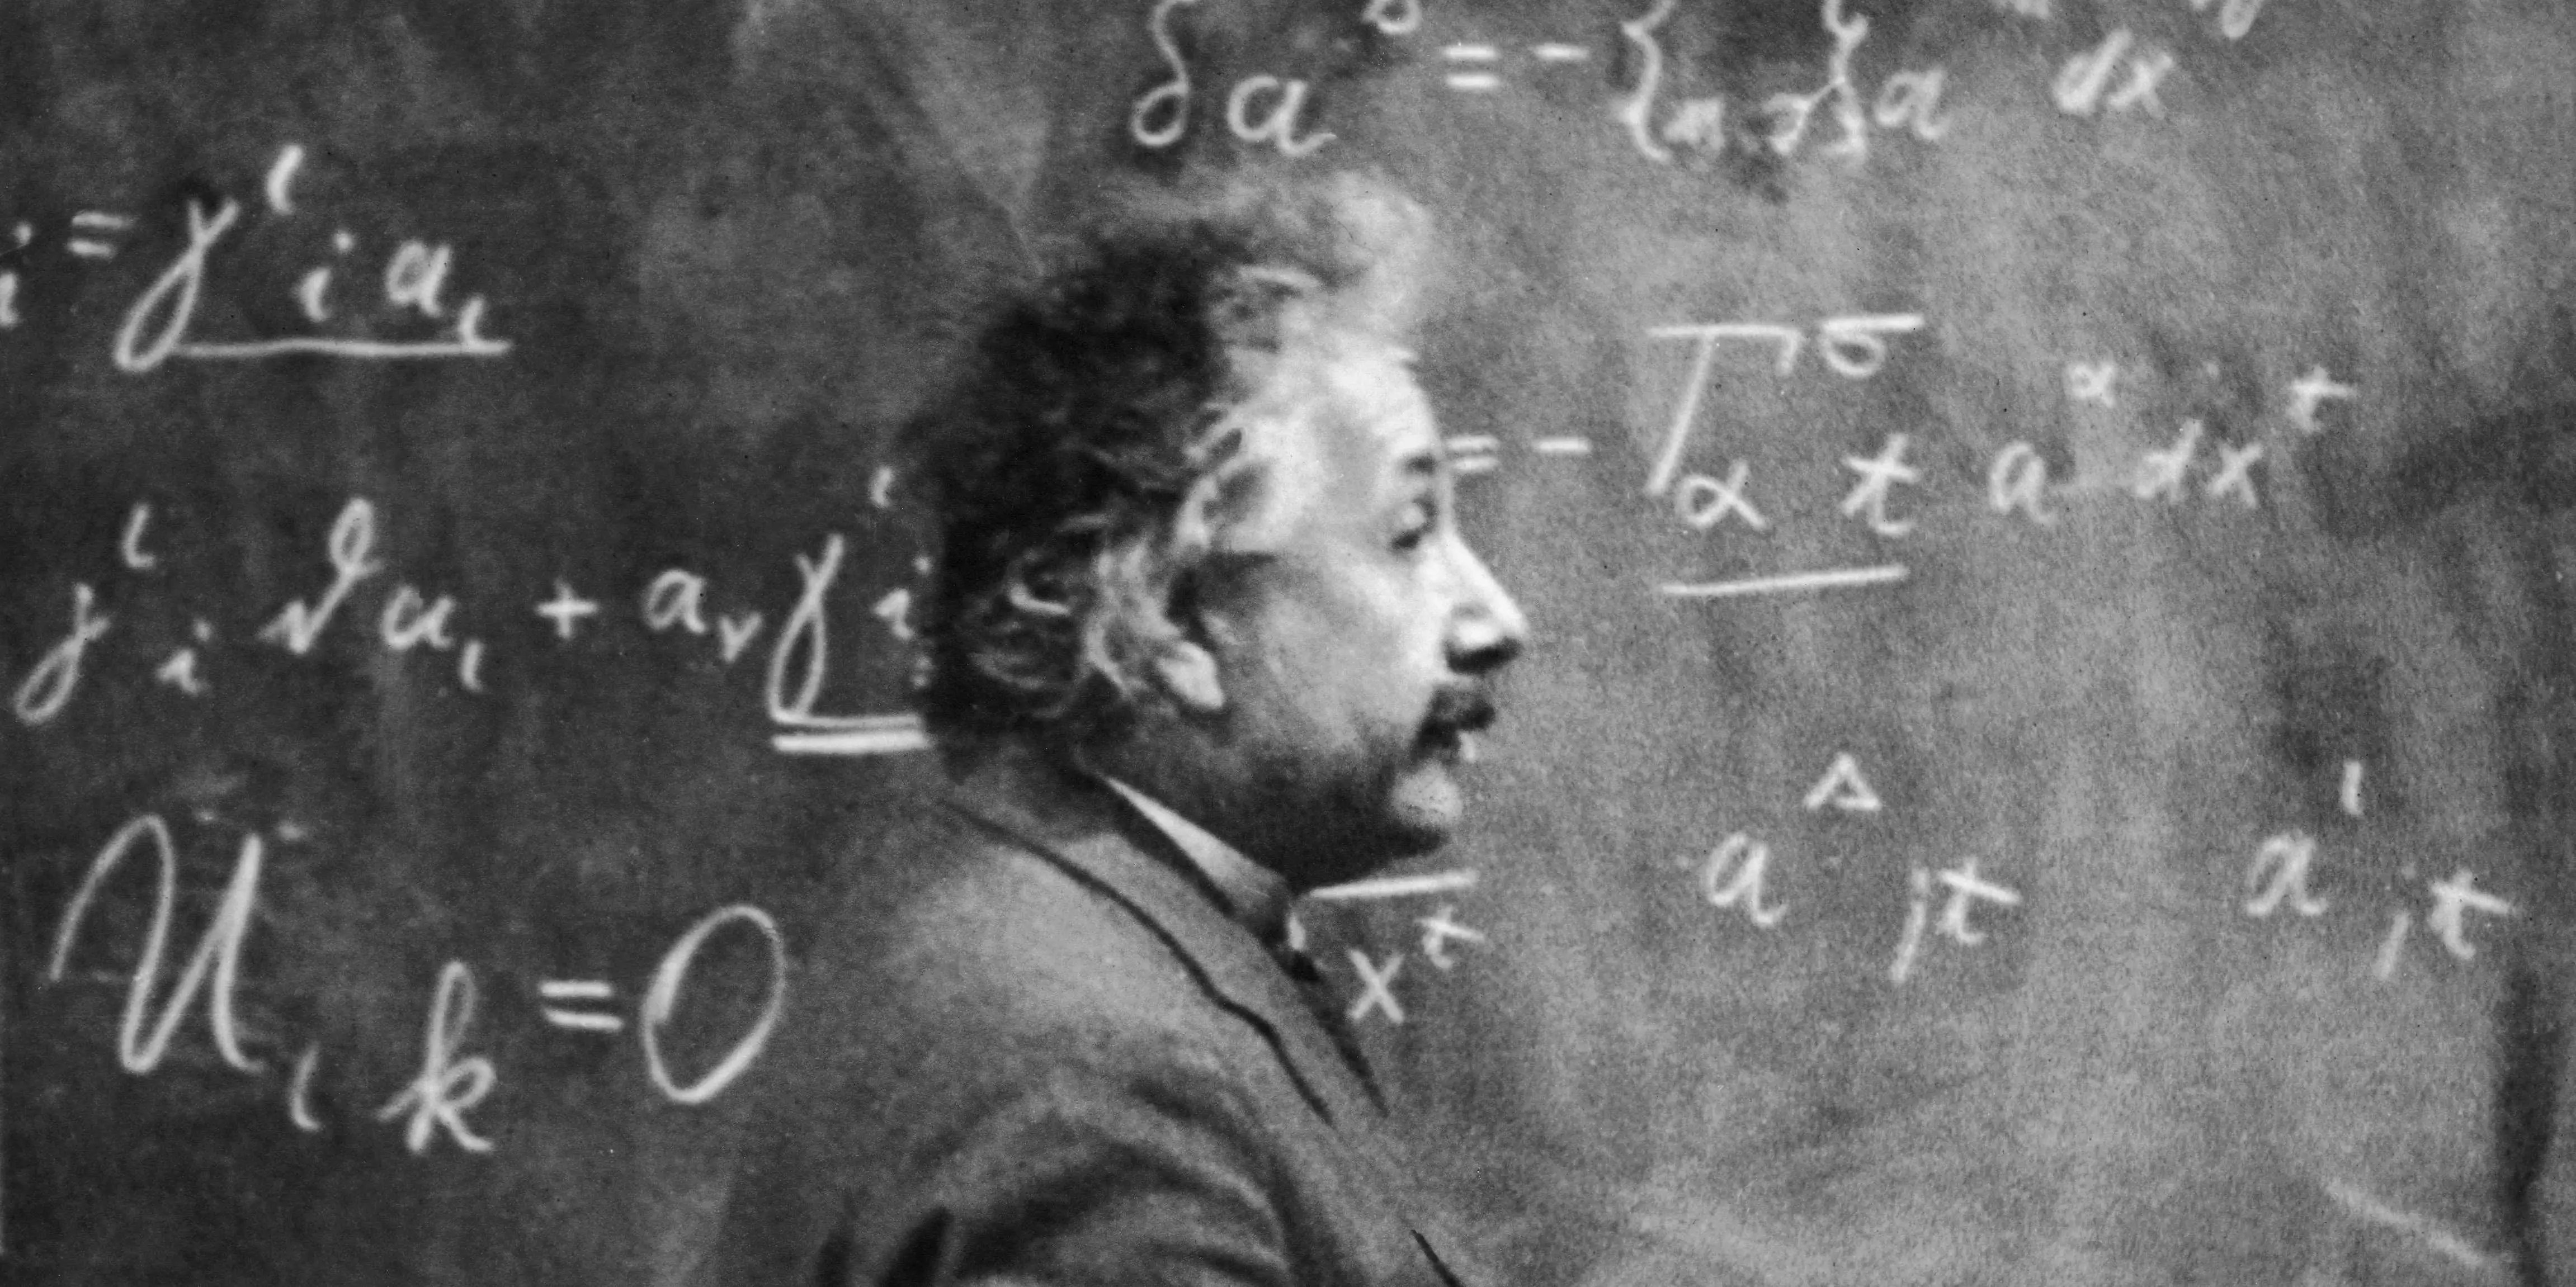 https://i1.wp.com/static5.businessinsider.com/image/54e4b11569bedd6322bdd5e7-1190-625/what-albert-einstein-said-on-his-deathbed-sheds-light-on-his-incredible-work-ethic.jpg